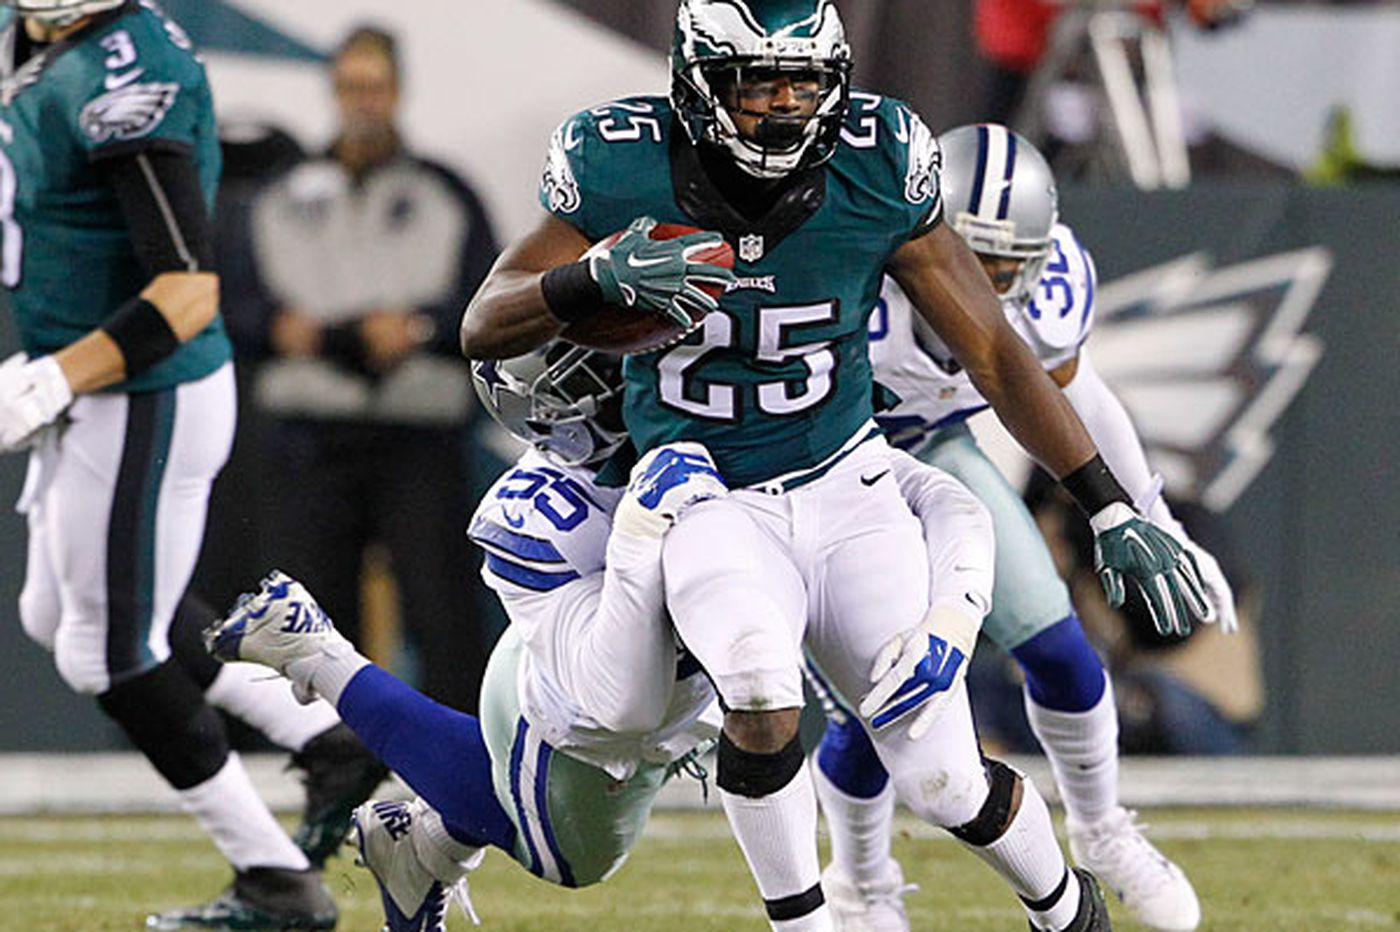 Eagles' McCoy getting fewer touches